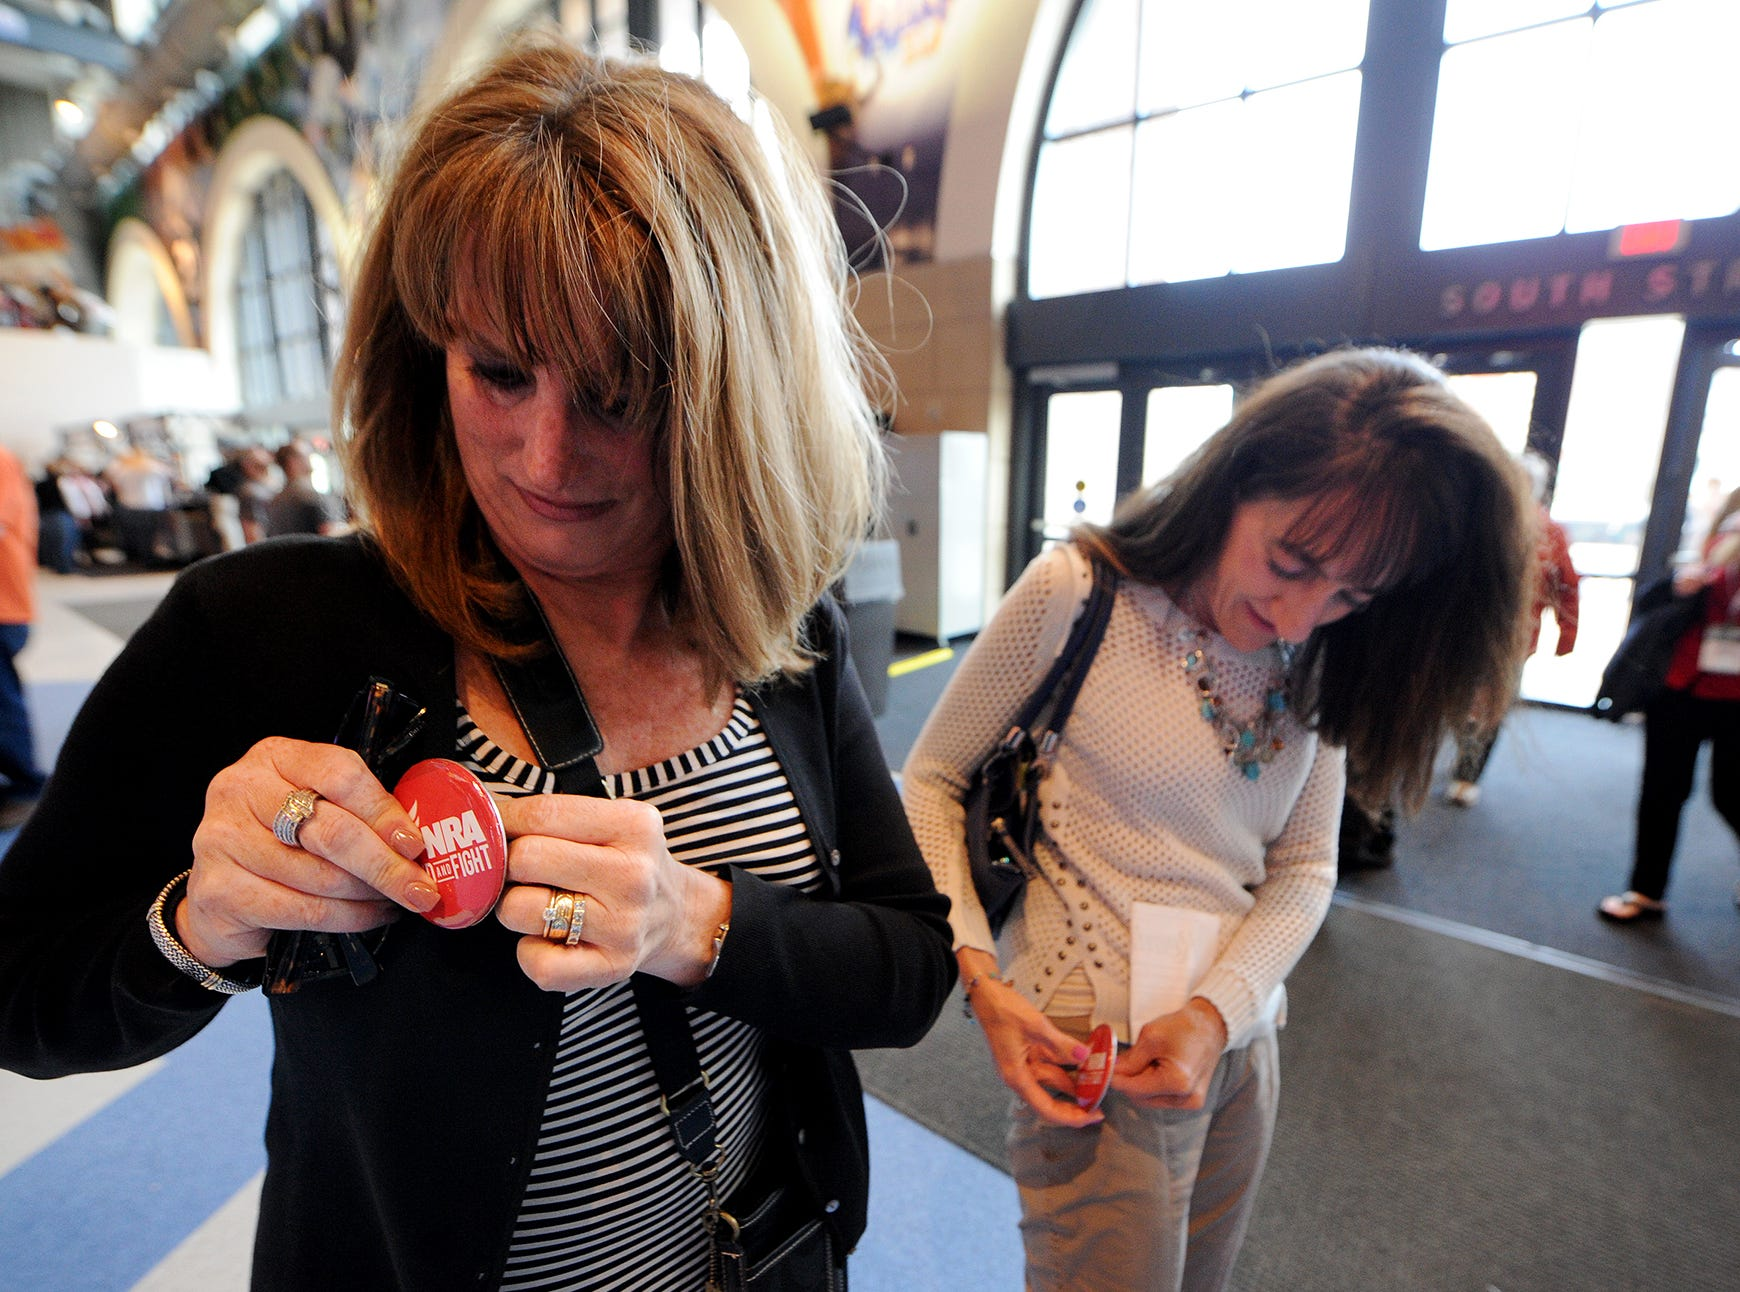 Susan Bryant, left, of New Palestine, and Cathy Arnold, of Greenfield, put on buttons at the NRA Stand and Fight Rally during the 143rd National Rifle Association Annual Meeting at Lucas Oil Stadium, Saturday, April 26, 2014, in Indianapolis.